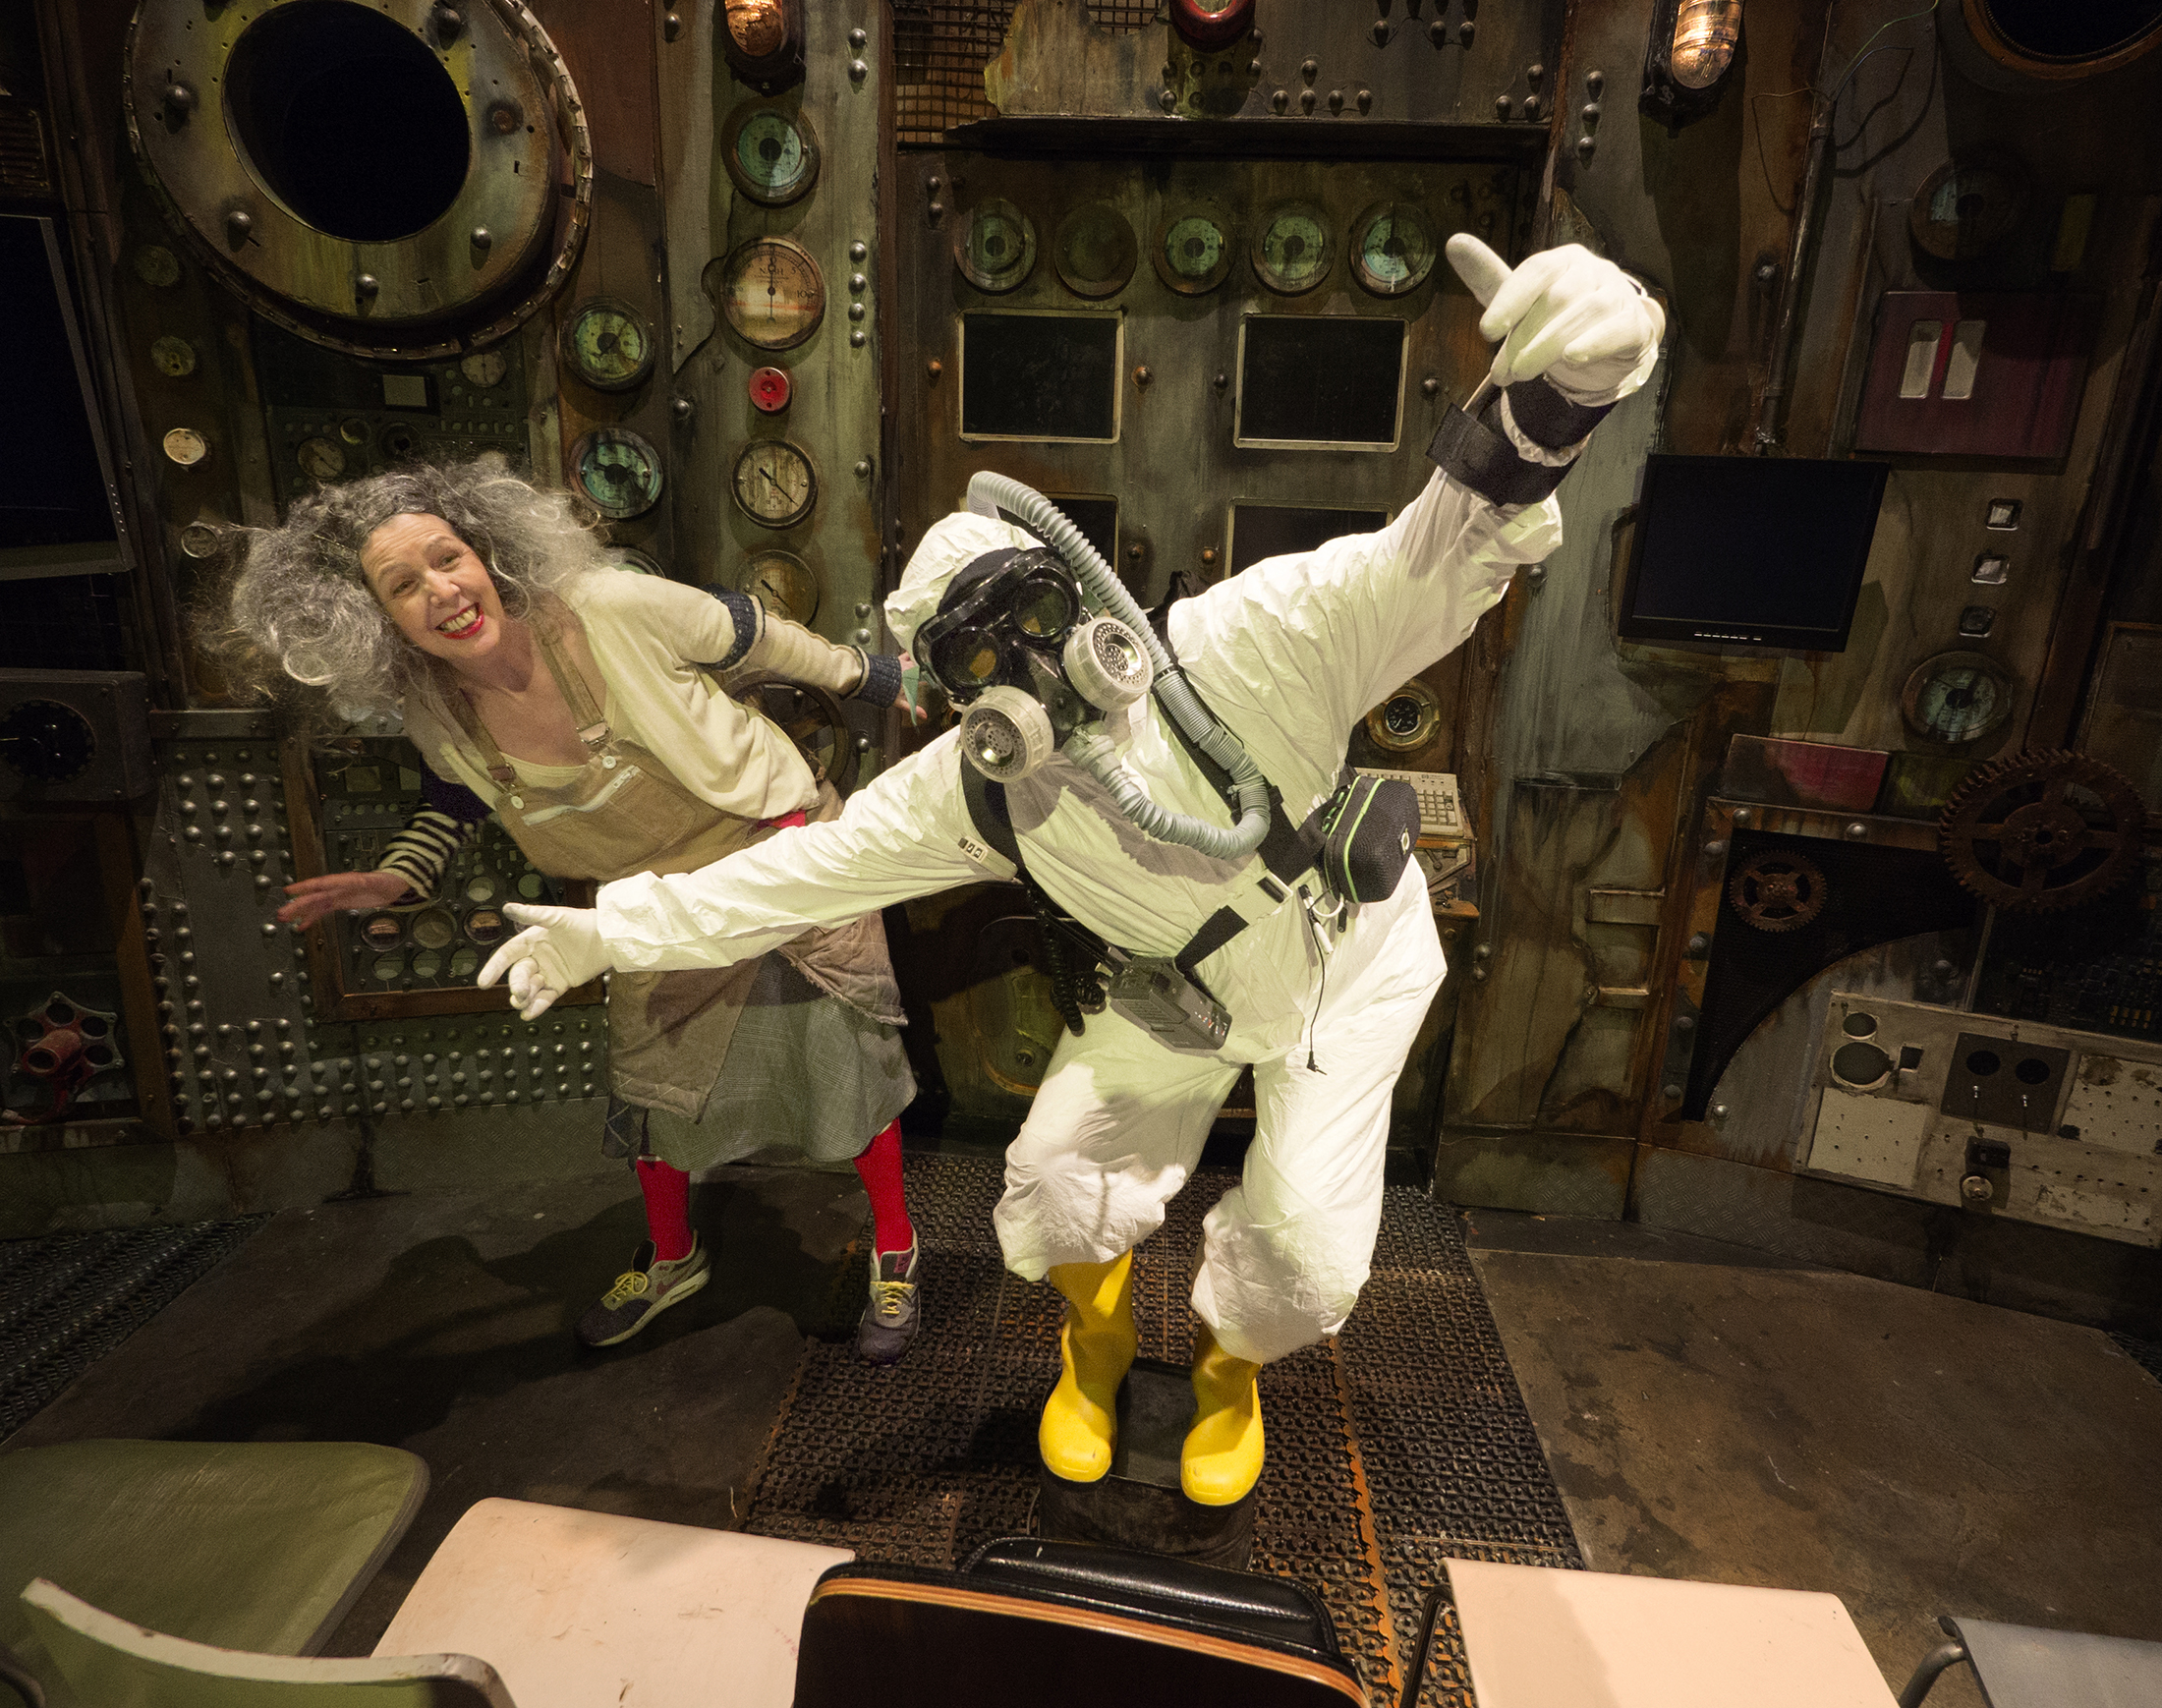 A person in an astronaut costume stands with bent knees and arms wide open while a white woman with curly grey hair peeks from behind in the same stance, smiling